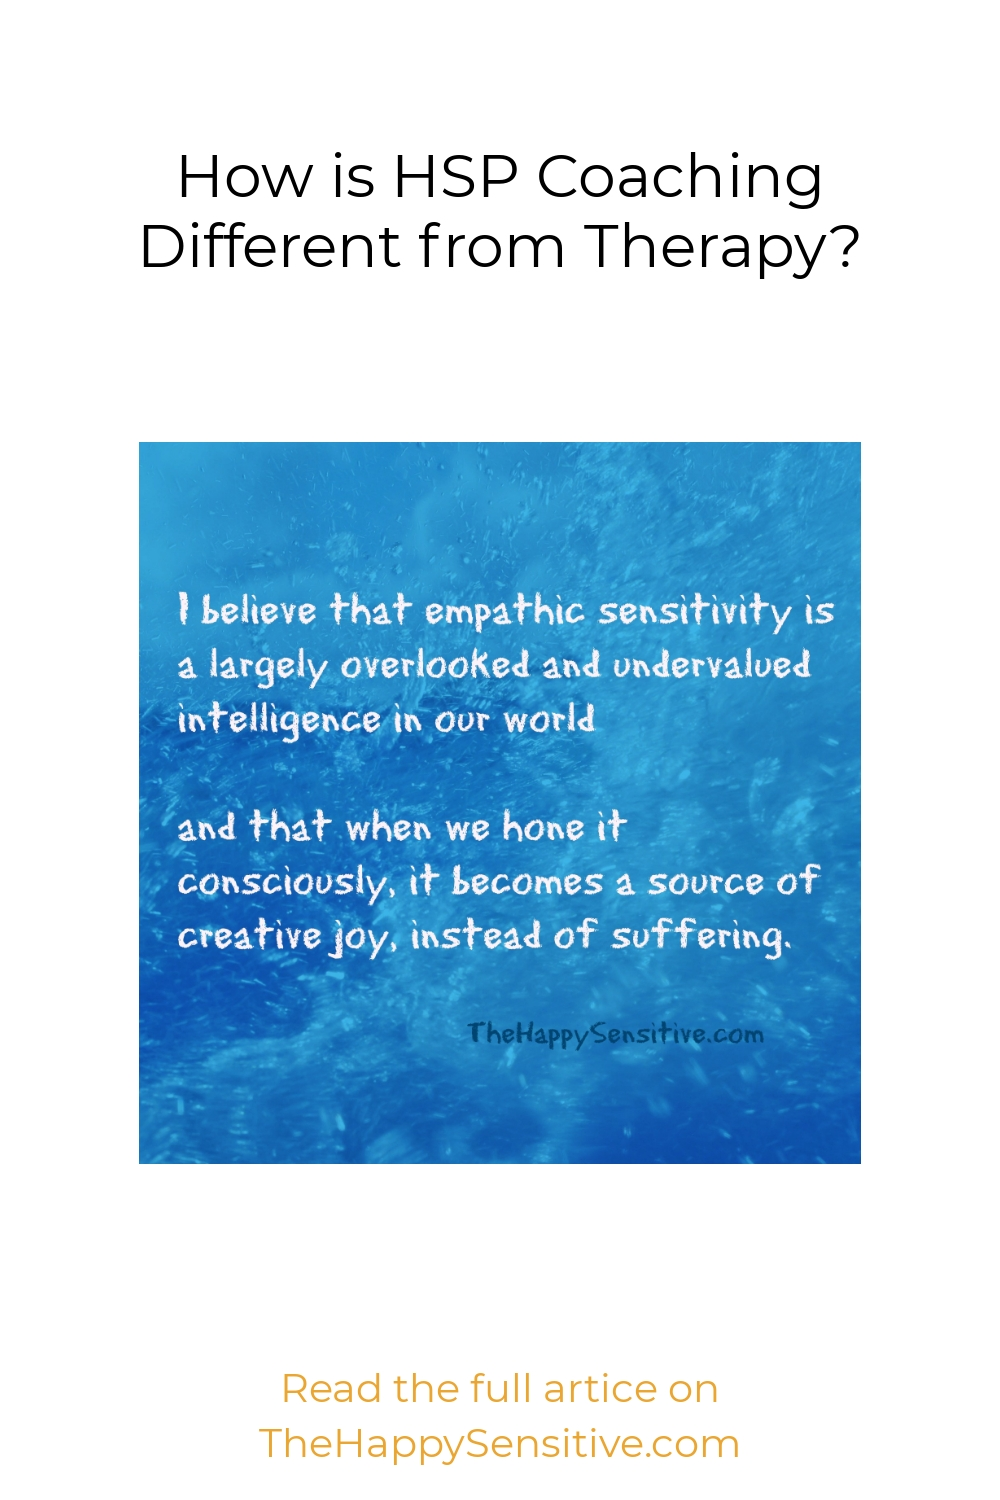 How is HSP Coaching Different from Therapy?